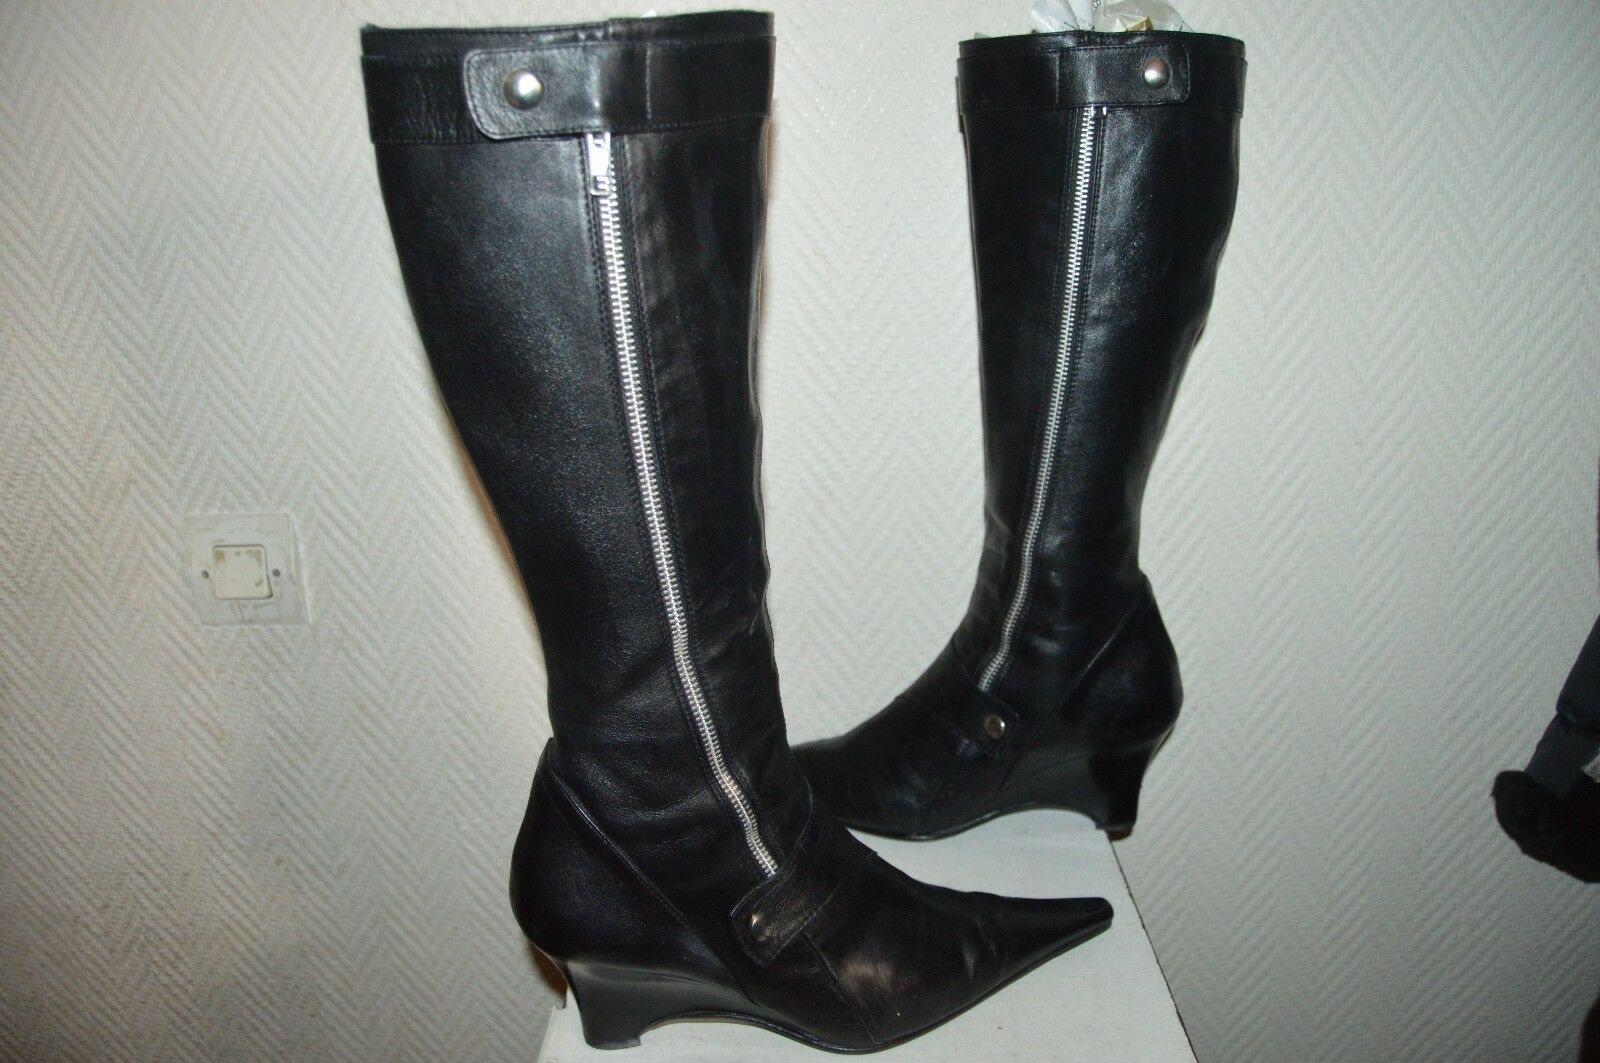 CHAUSSURE BOTTE REQINS CUIR size 40 LEATHER SHOES BOOTS BOTAS STIVALI